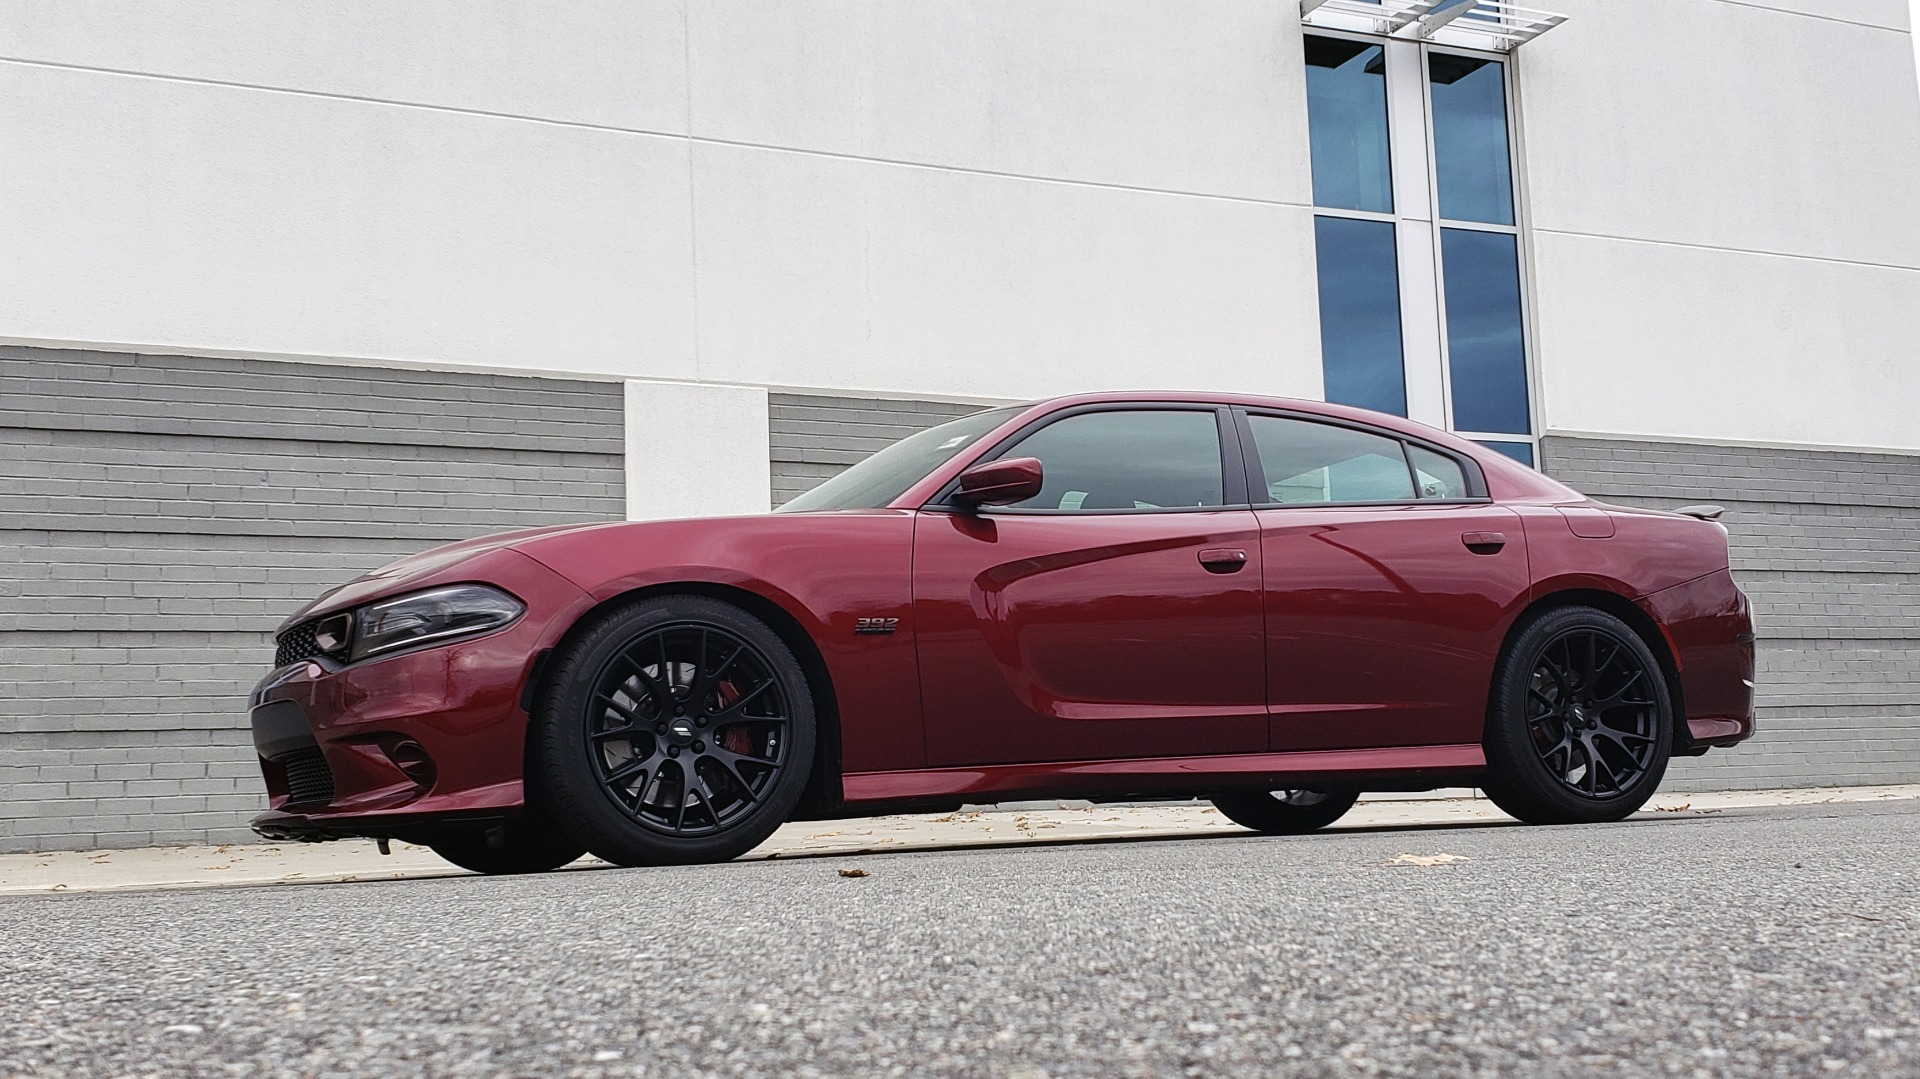 Used 2018 Dodge CHARGER R/T SCAT PACK / 6.4L 485HP / 8-SPD AUTO / HEATED / REARVIEW for sale Sold at Formula Imports in Charlotte NC 28227 2